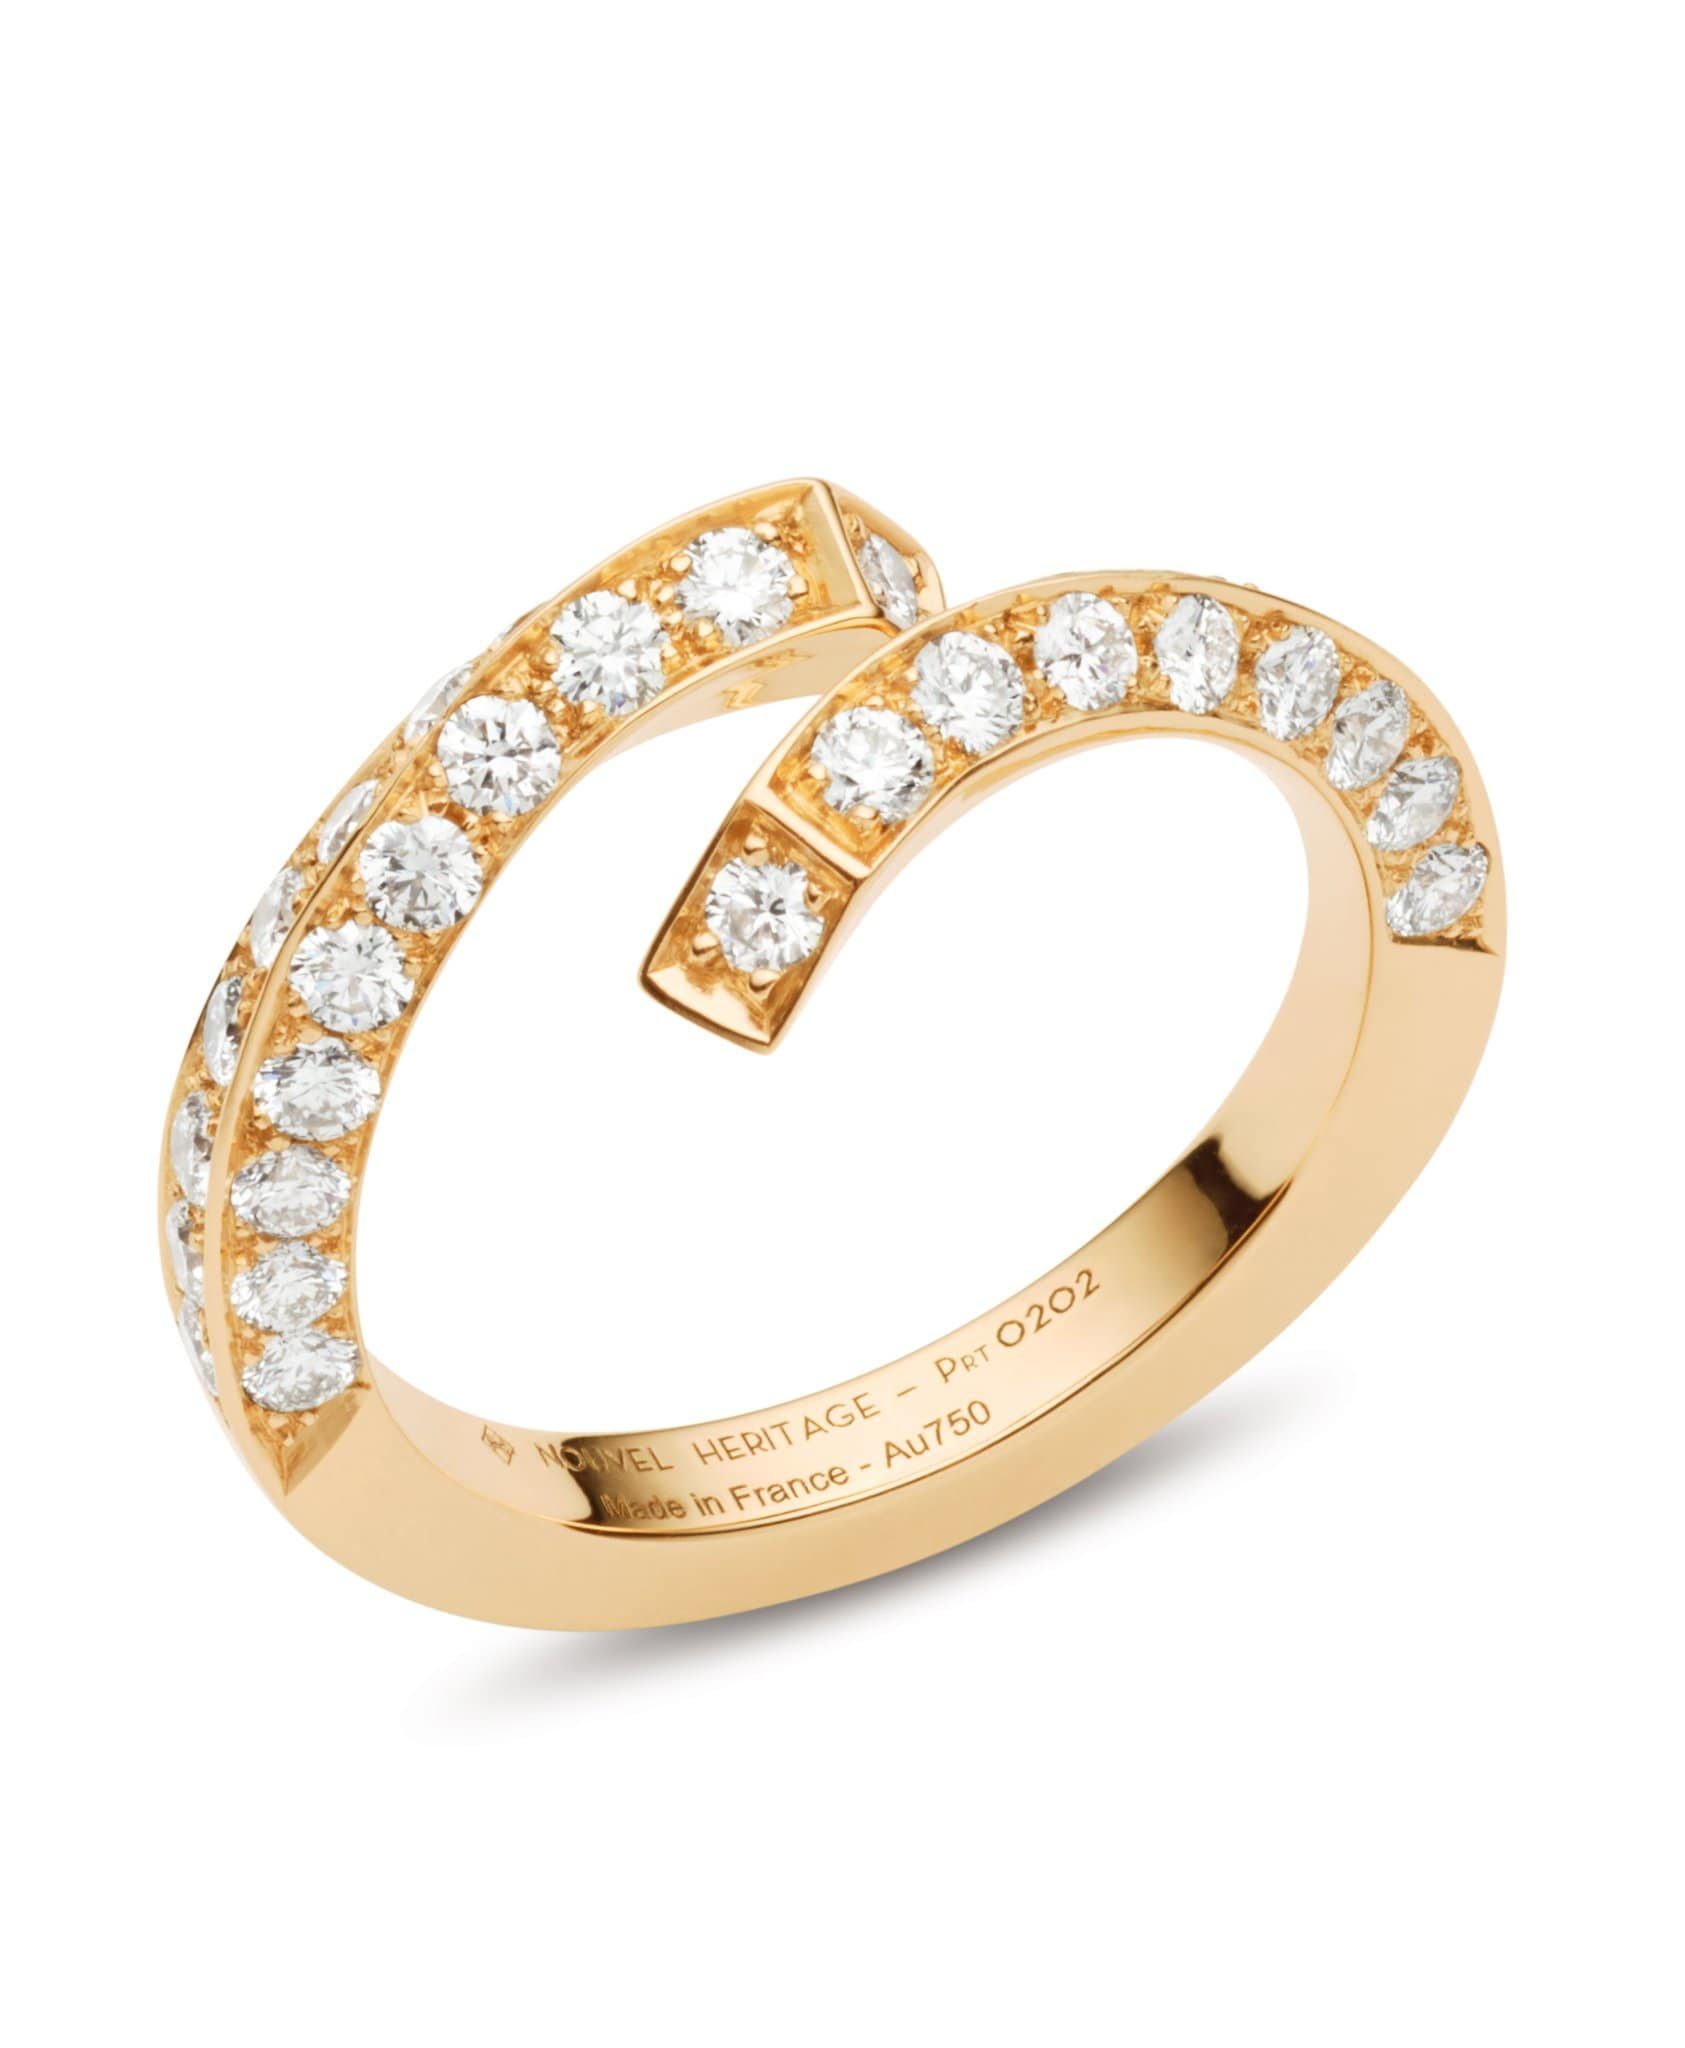 Diamond Thread Ring: Discover Luxury Fine Jewelry | Nouvel Heritage || Yellow Gold